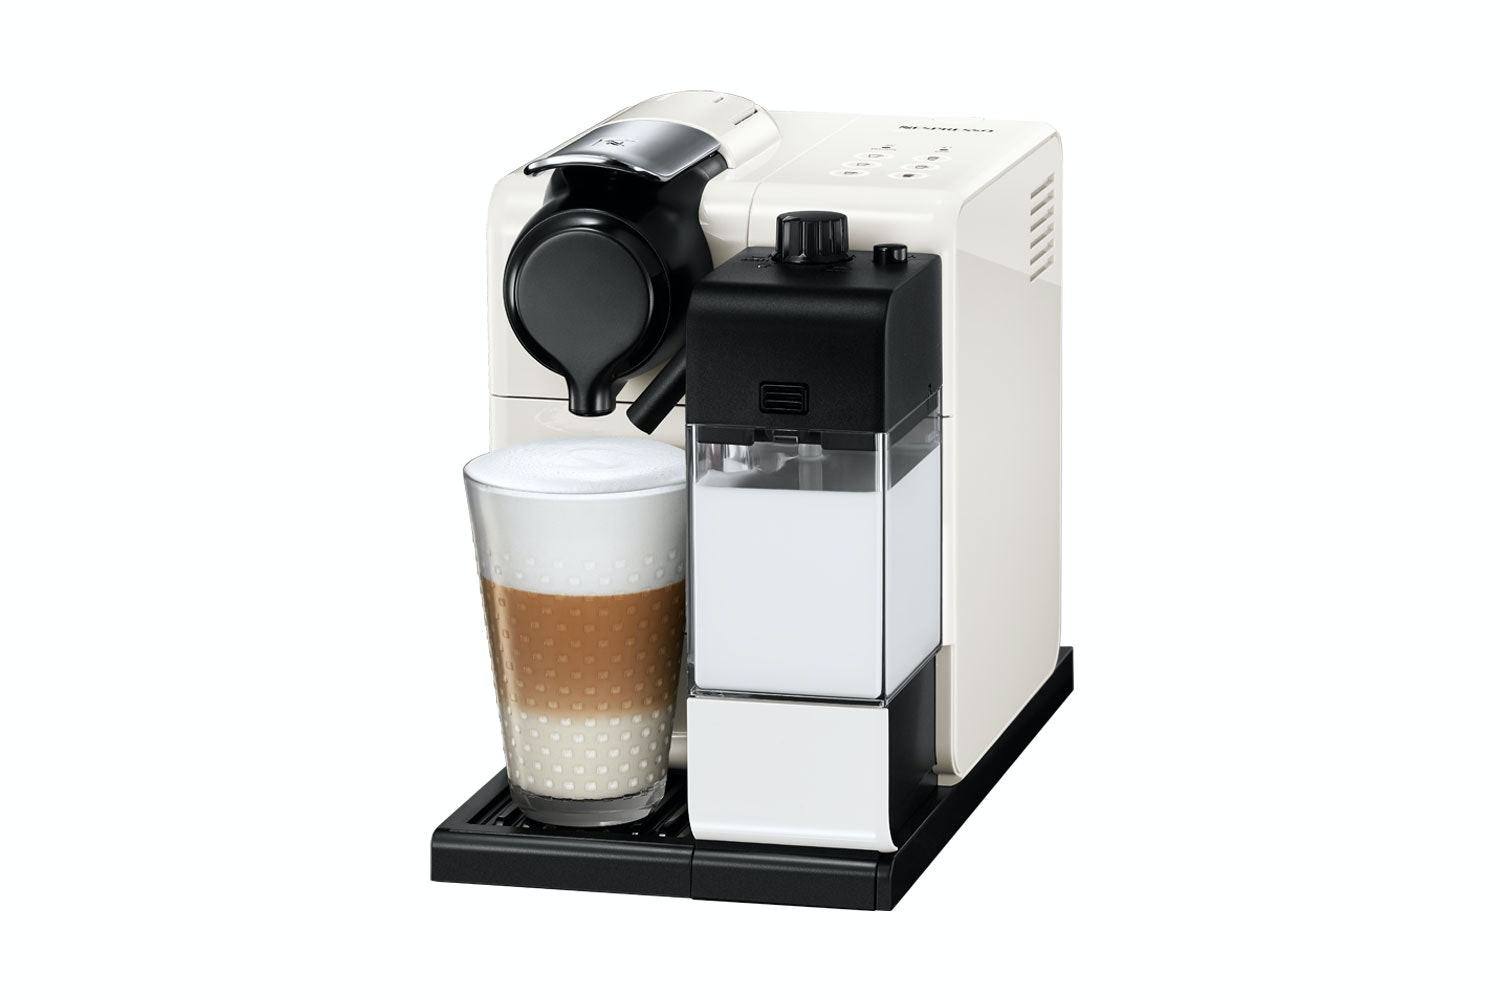 Nespresso Coffee Maker 220 Volts : Delonghi Espresso. Delonghi Espresso Machine 3d Model. Delonghi Nespresso Coffee Machine Tools ...